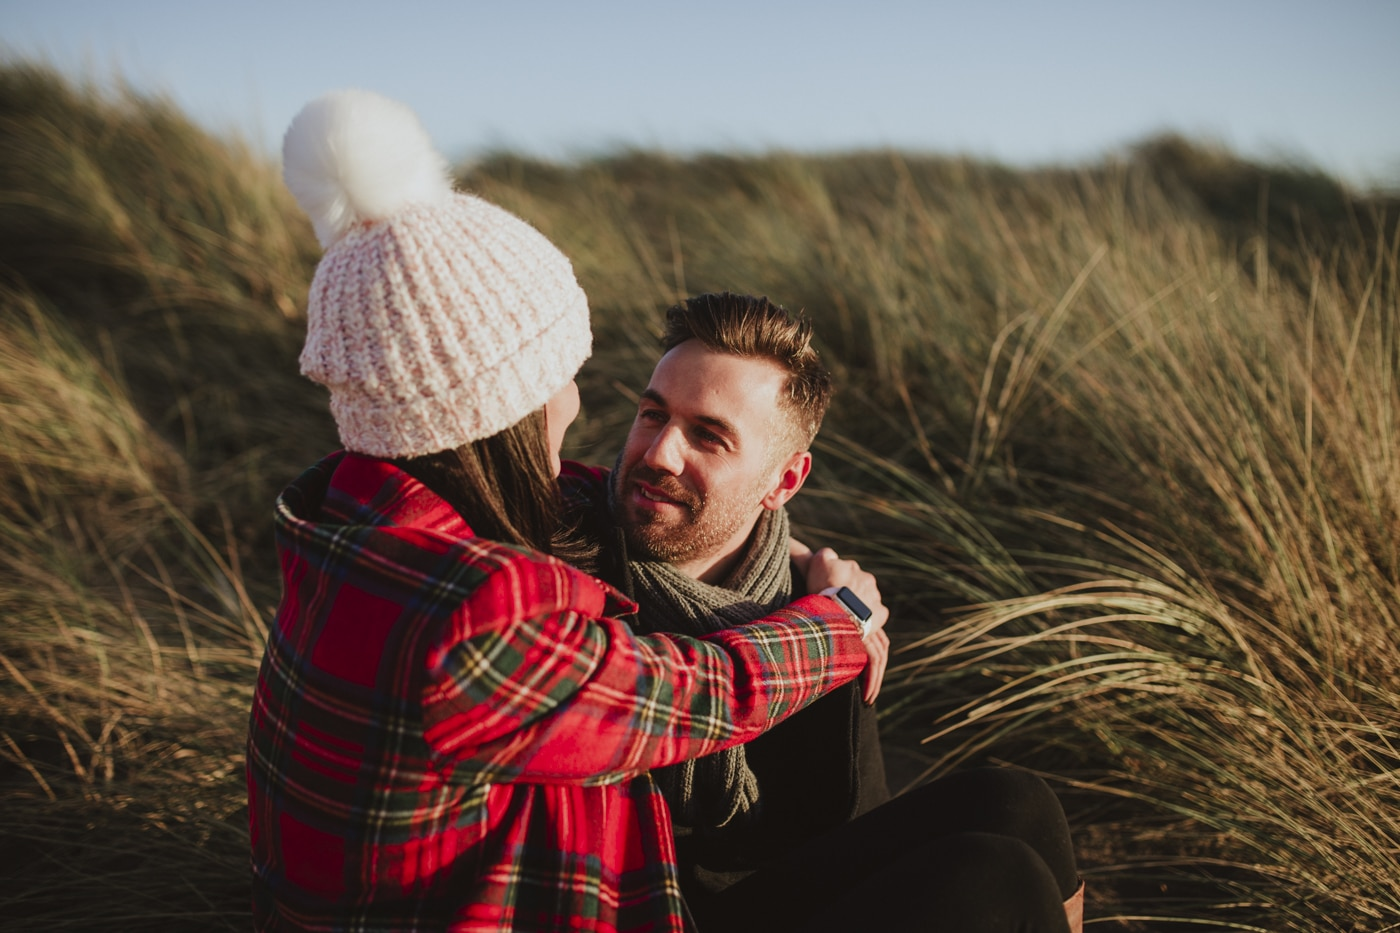 Cumbrian couple with tartan and bobble hat sitting in sand dunes by Joshua Wyborn